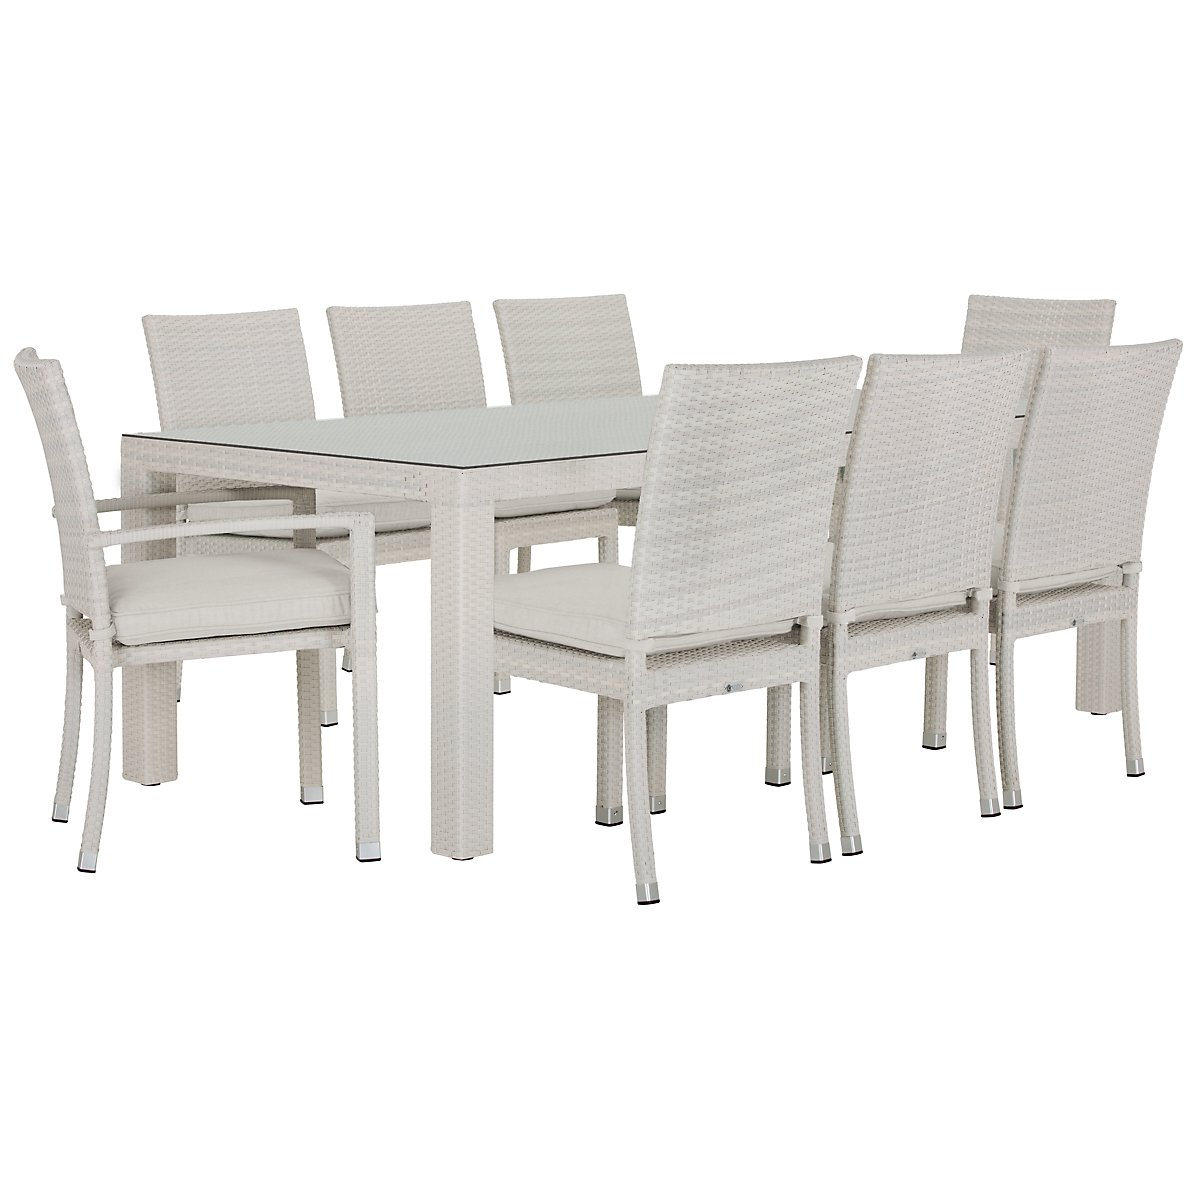 City Furniture Bahia White Rectangular Table Chairs - Rectangle table with 4 chairs